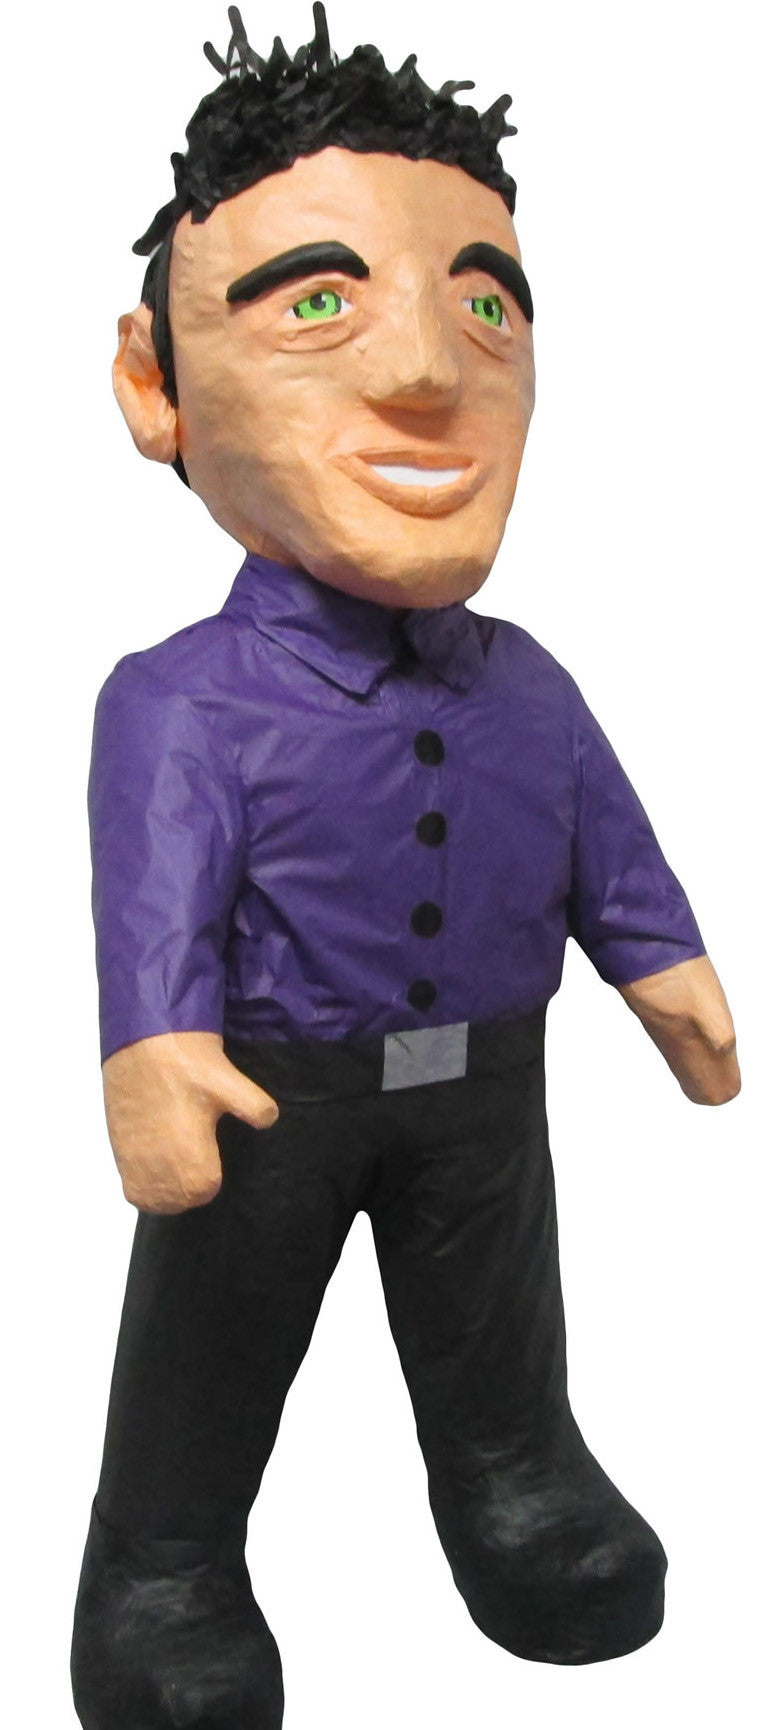 Guy in Purple Shirt Custom Pinata